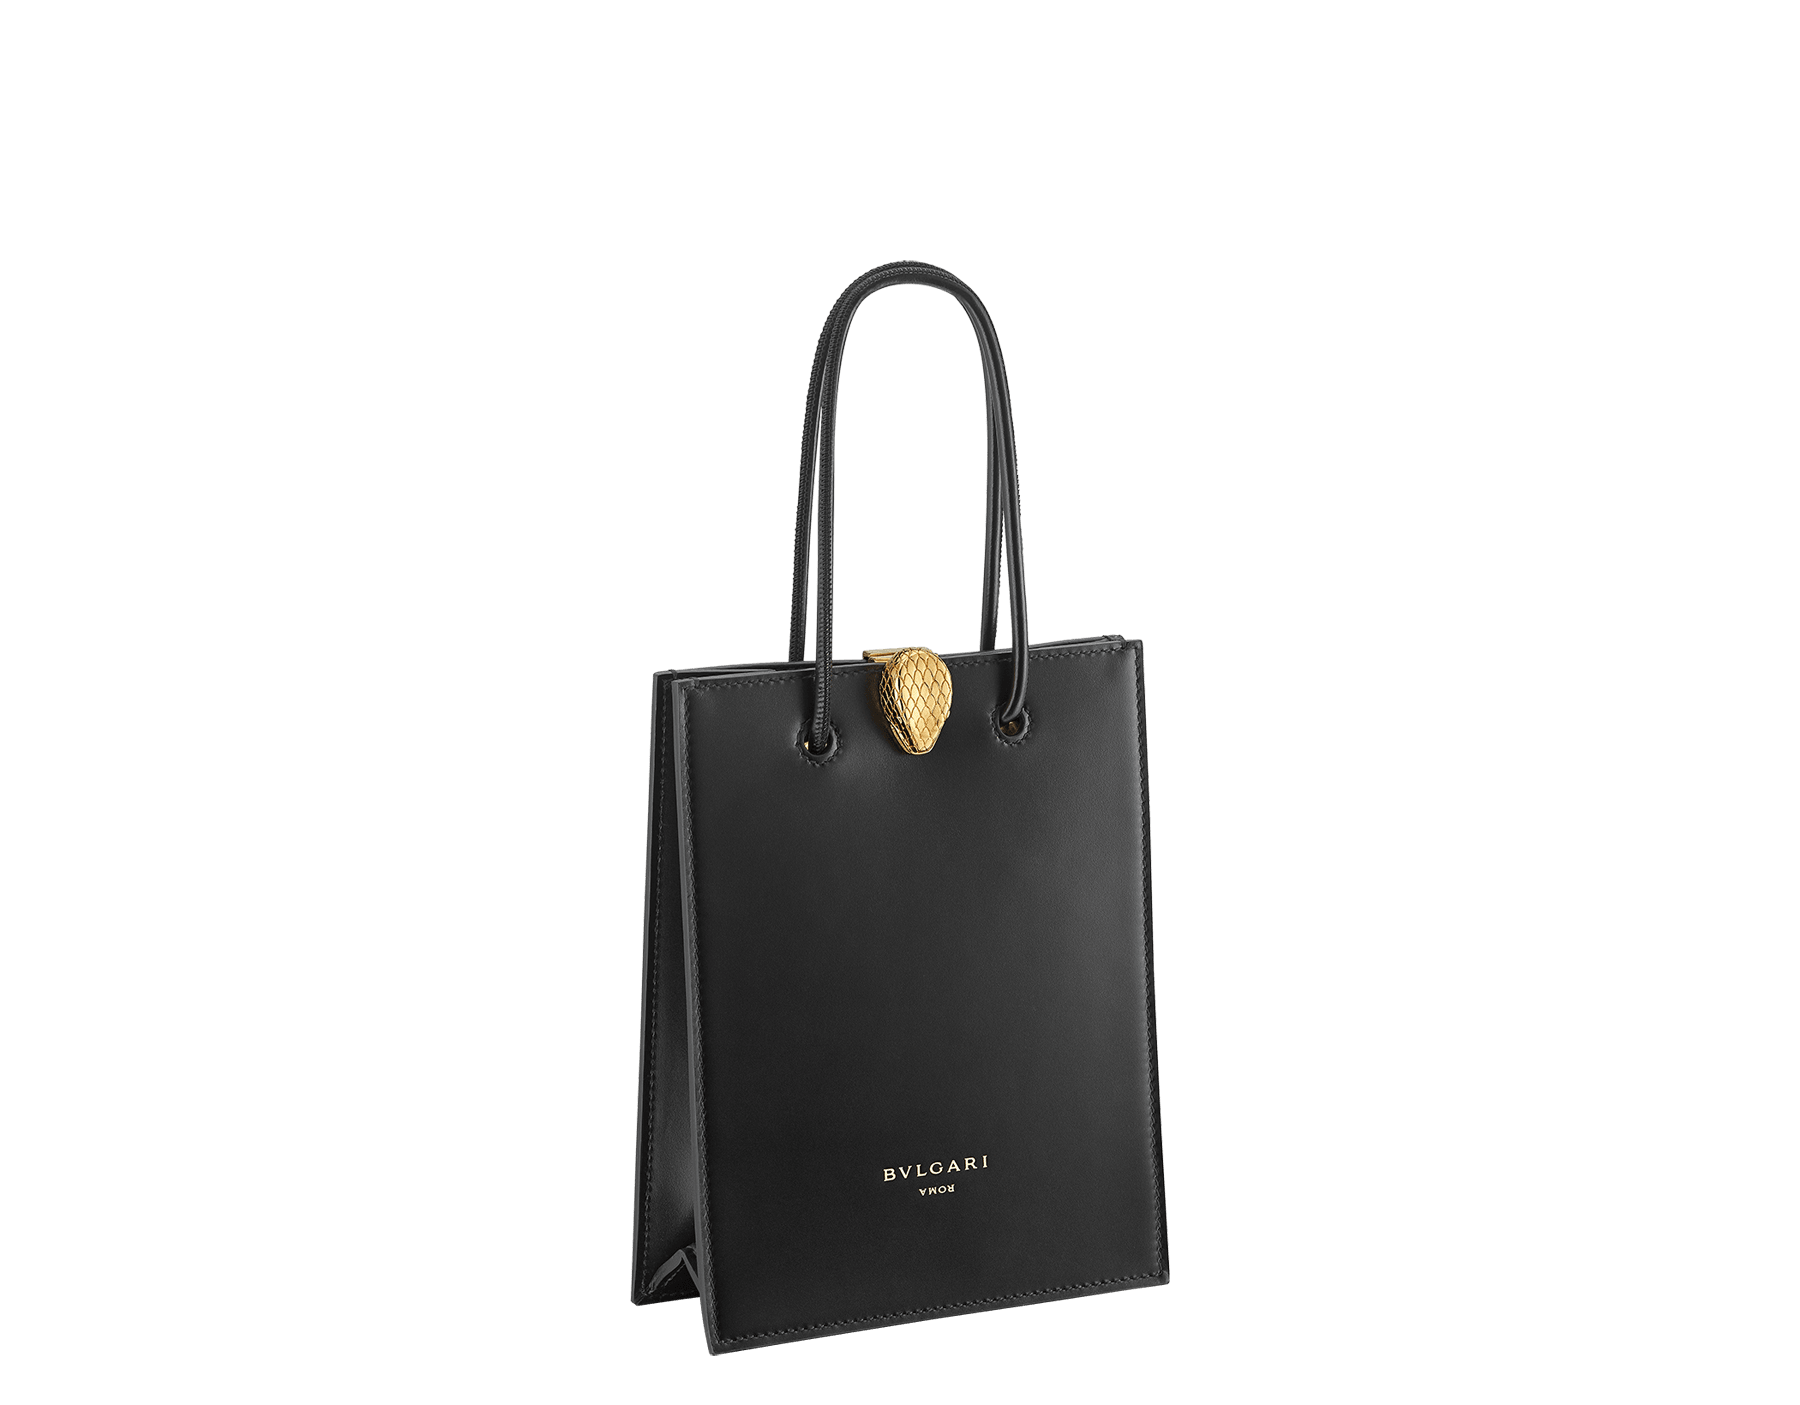 Alexander Wang x Bvlgari mini shopping tote bag in black smooth calf leather. New Serpenti head closure in antique gold plated brass with tempting red enamel eyes. Limited edition. 288726 image 2